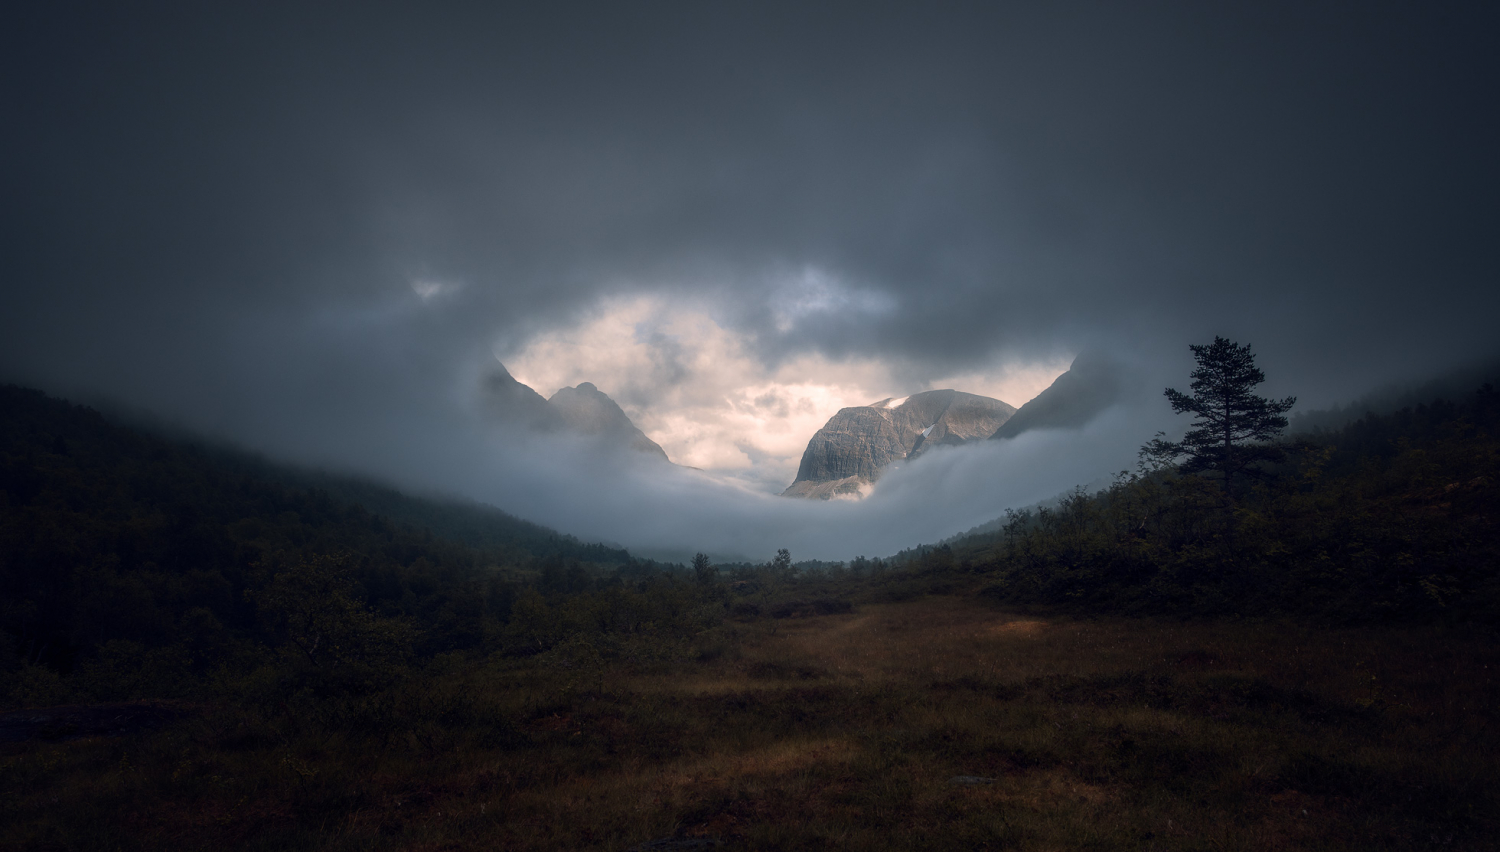 moody mountain scene - 4 Reasons Why You Aren't Getting Sharp Images